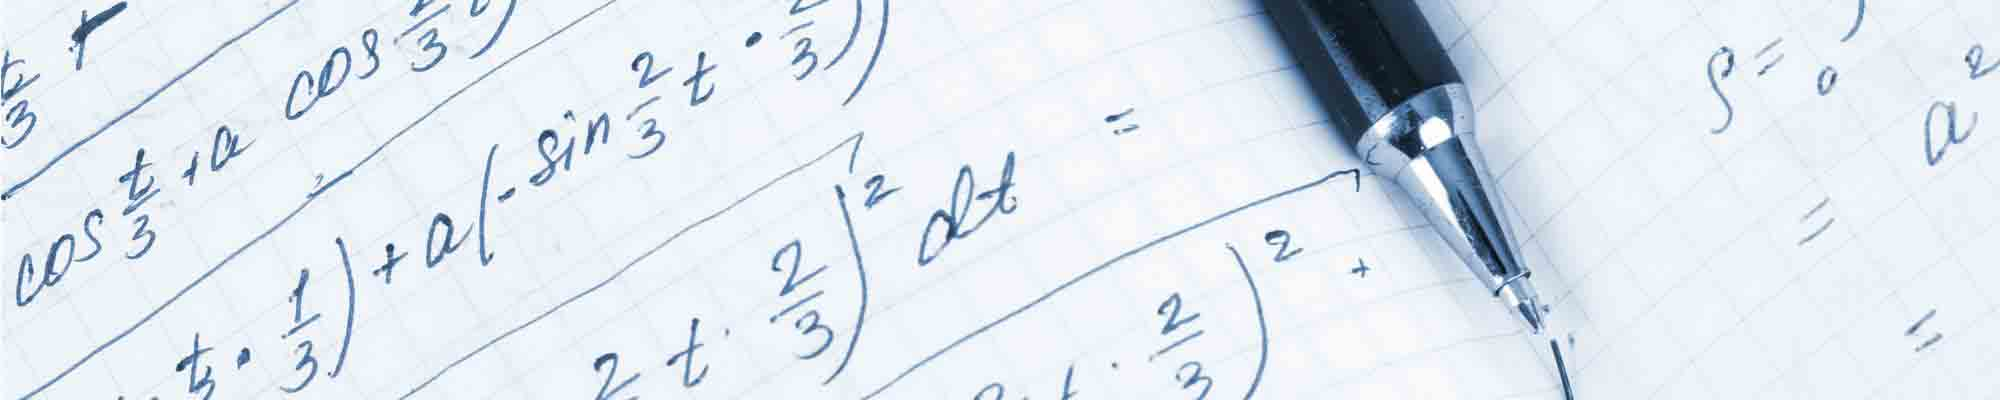 Hand-written mathematical calculations on squared paper